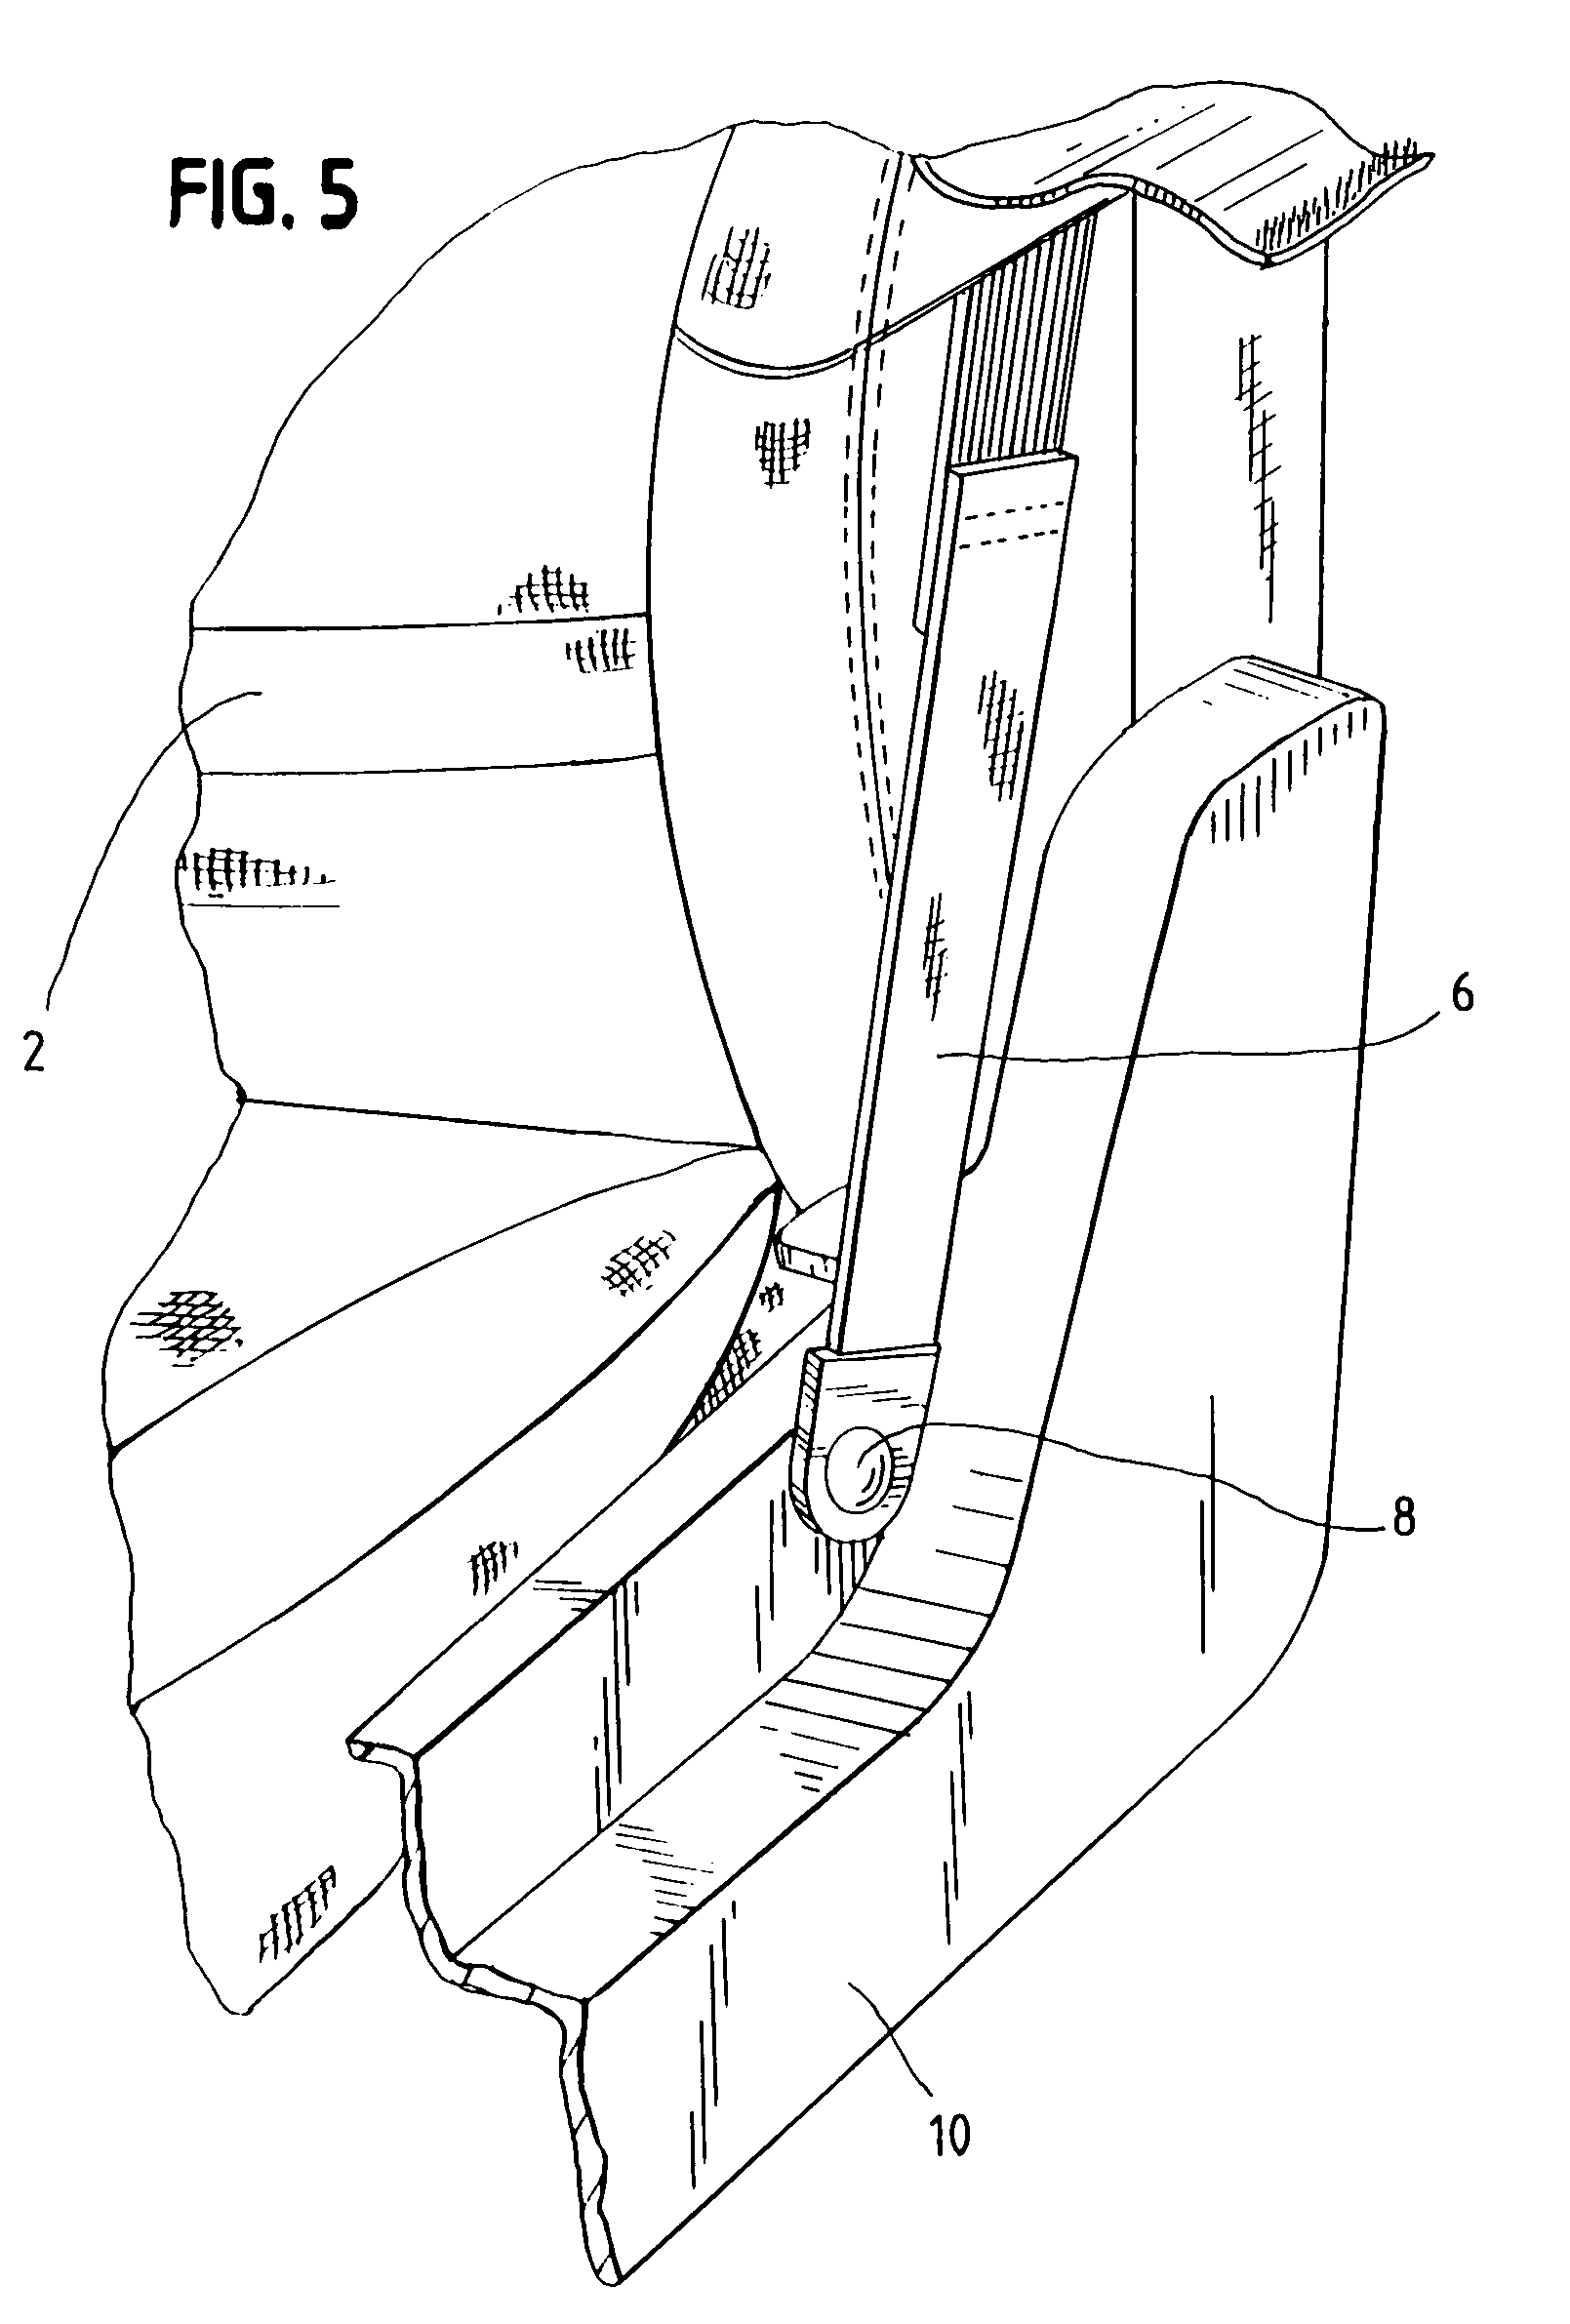 patent us7104570 - low mount seat belt guide loop